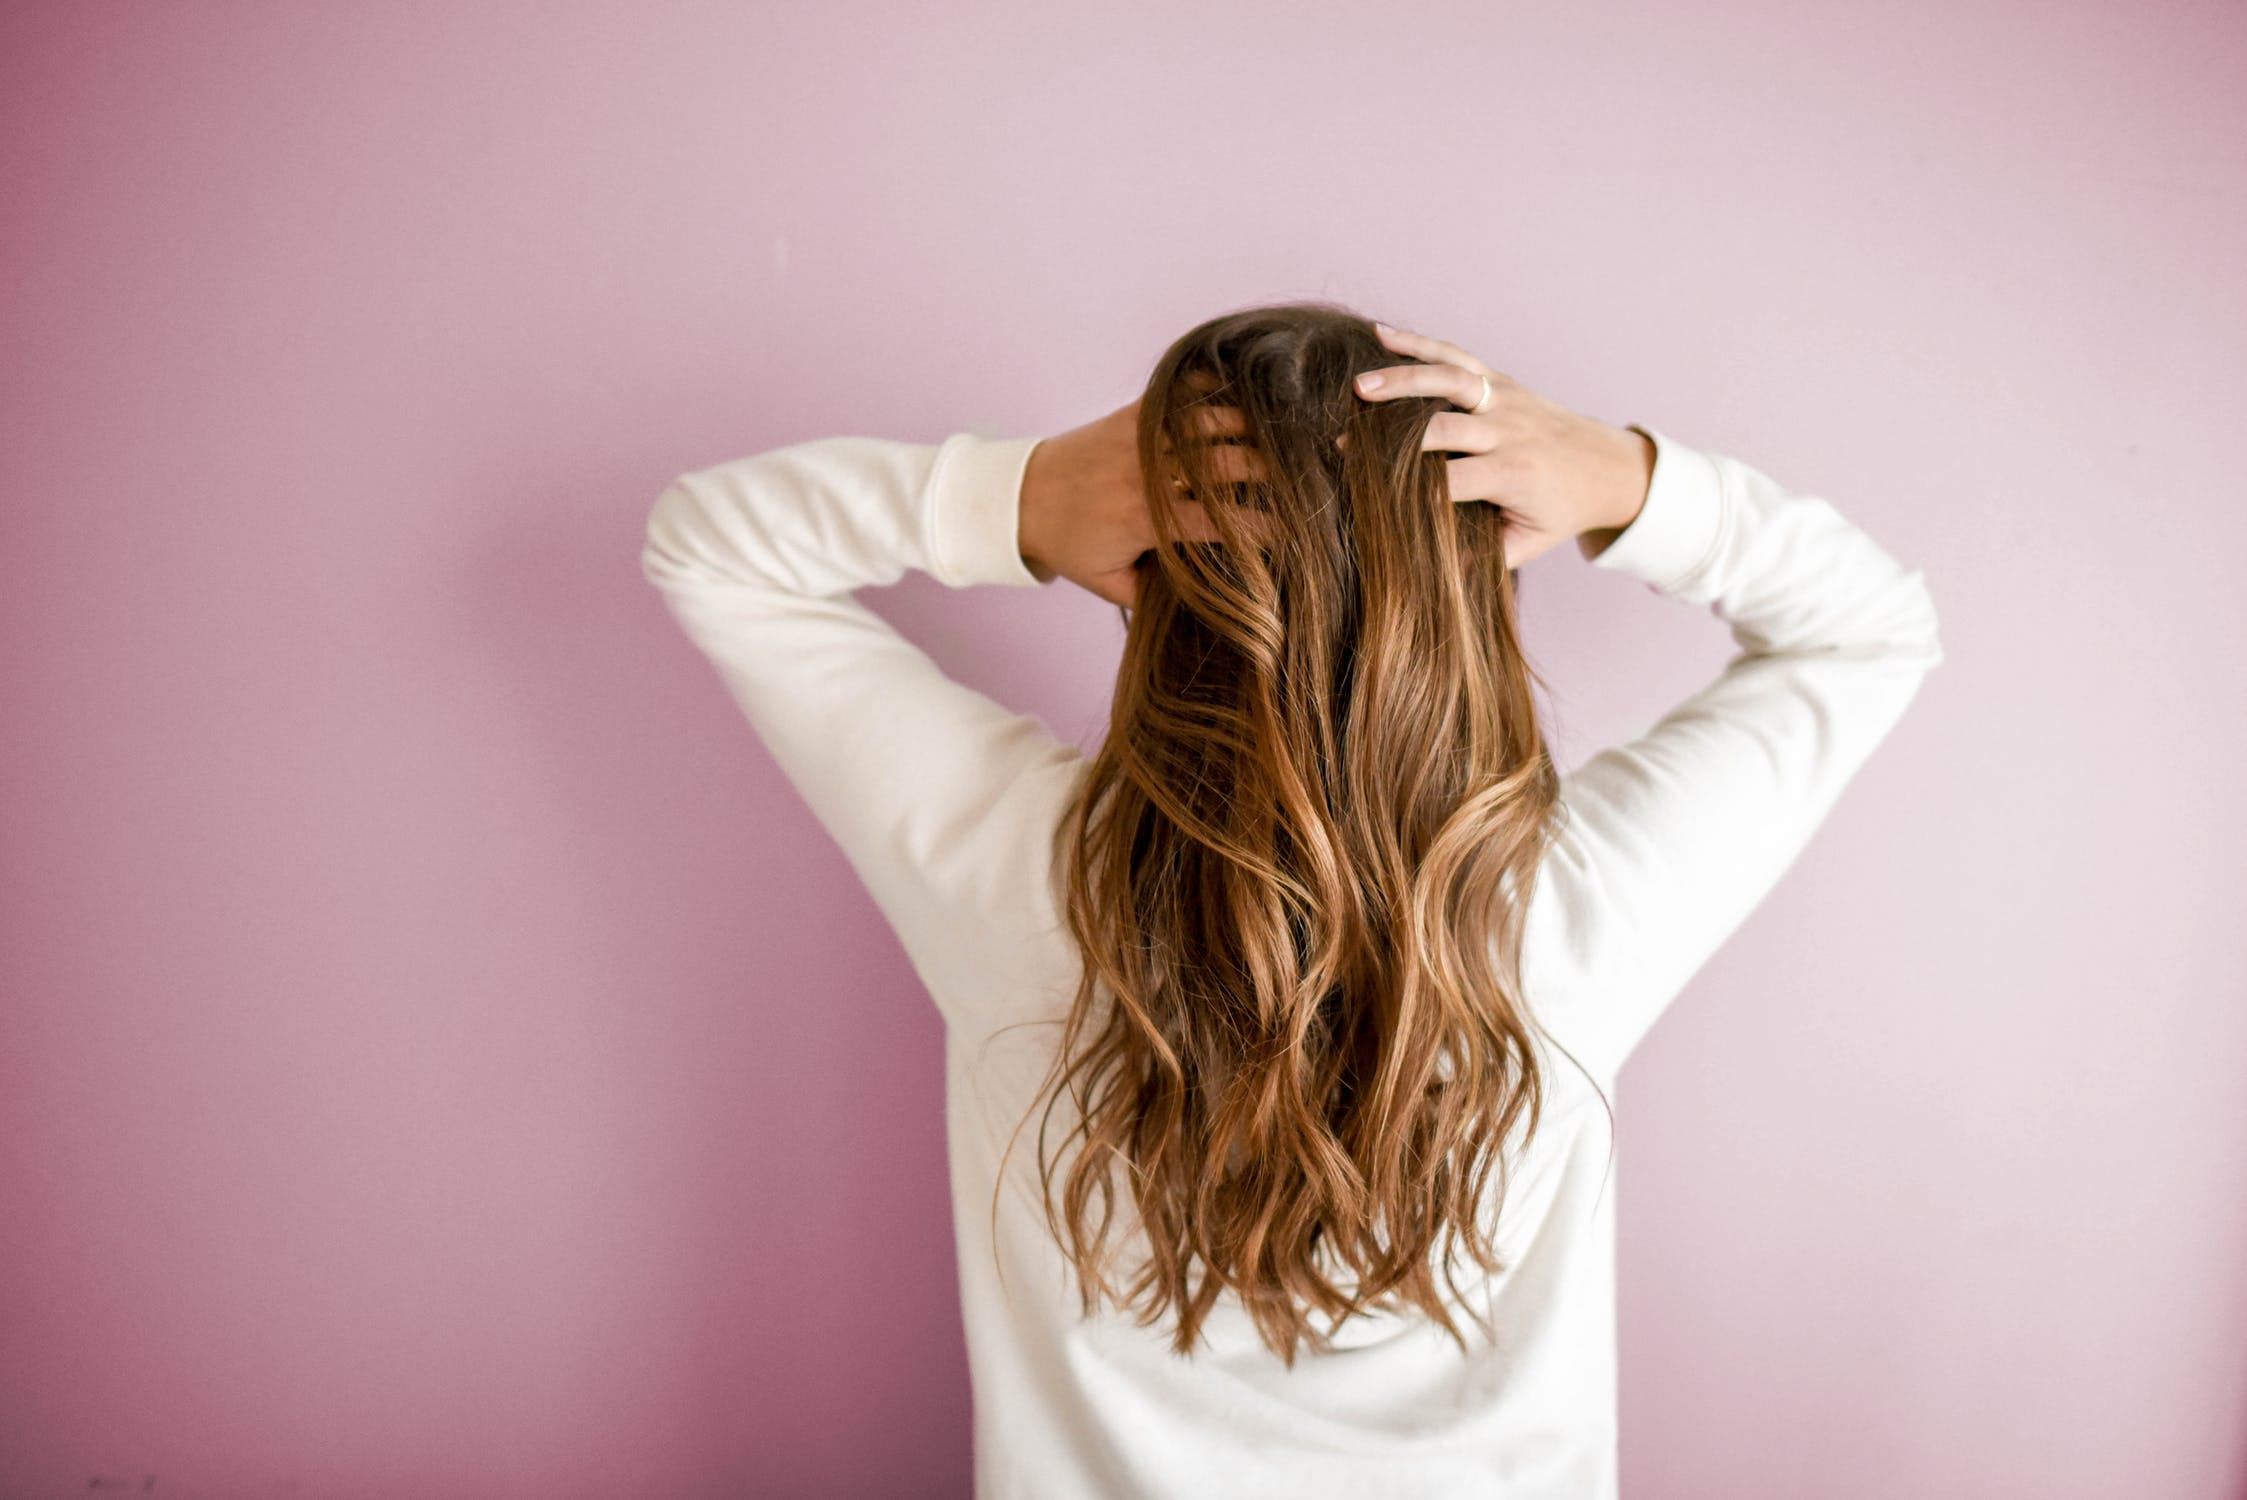 Top Reasons to Engage the Help of a Professional When Dealing with Hair Loss